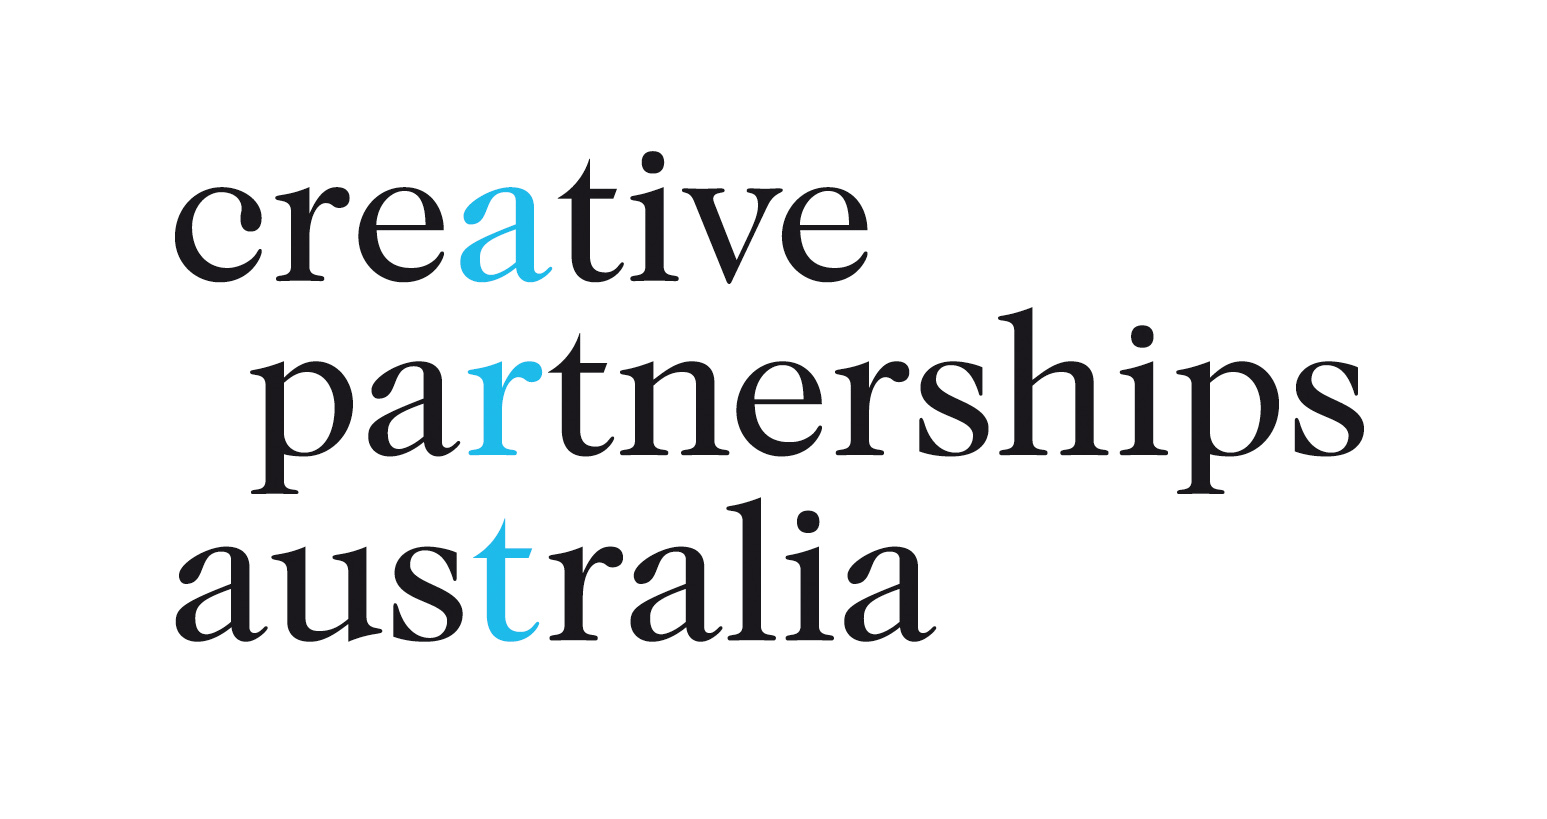 This recording project was supported by Creative Partnerships Australia MATCH funding program.